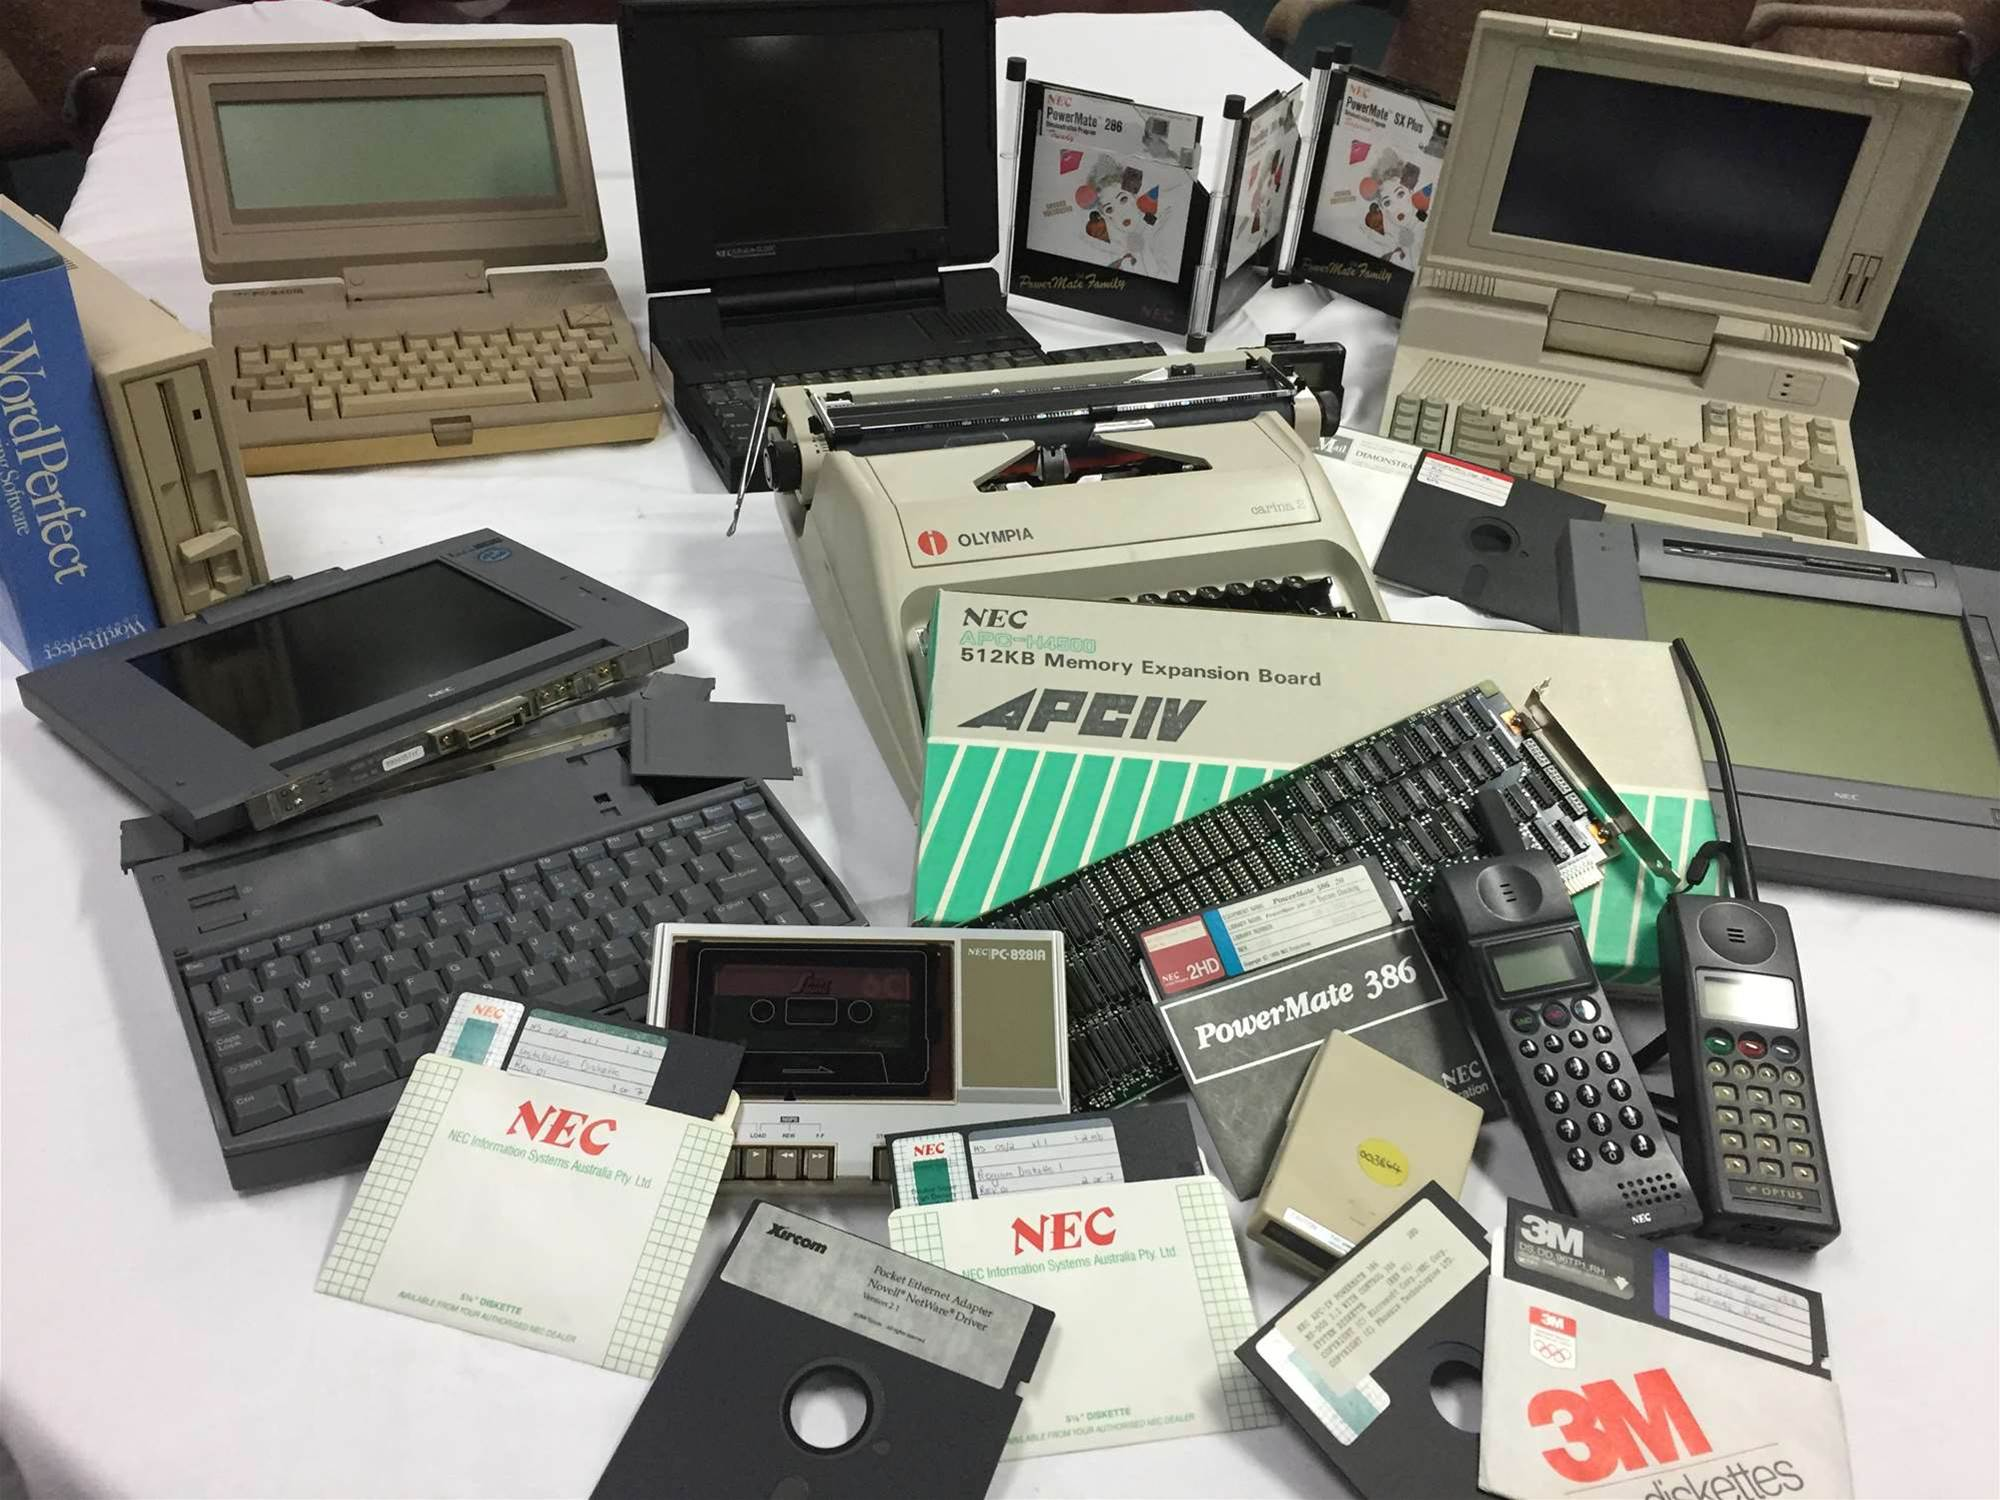 Photos: The old technology lurking in Australia's cupboards